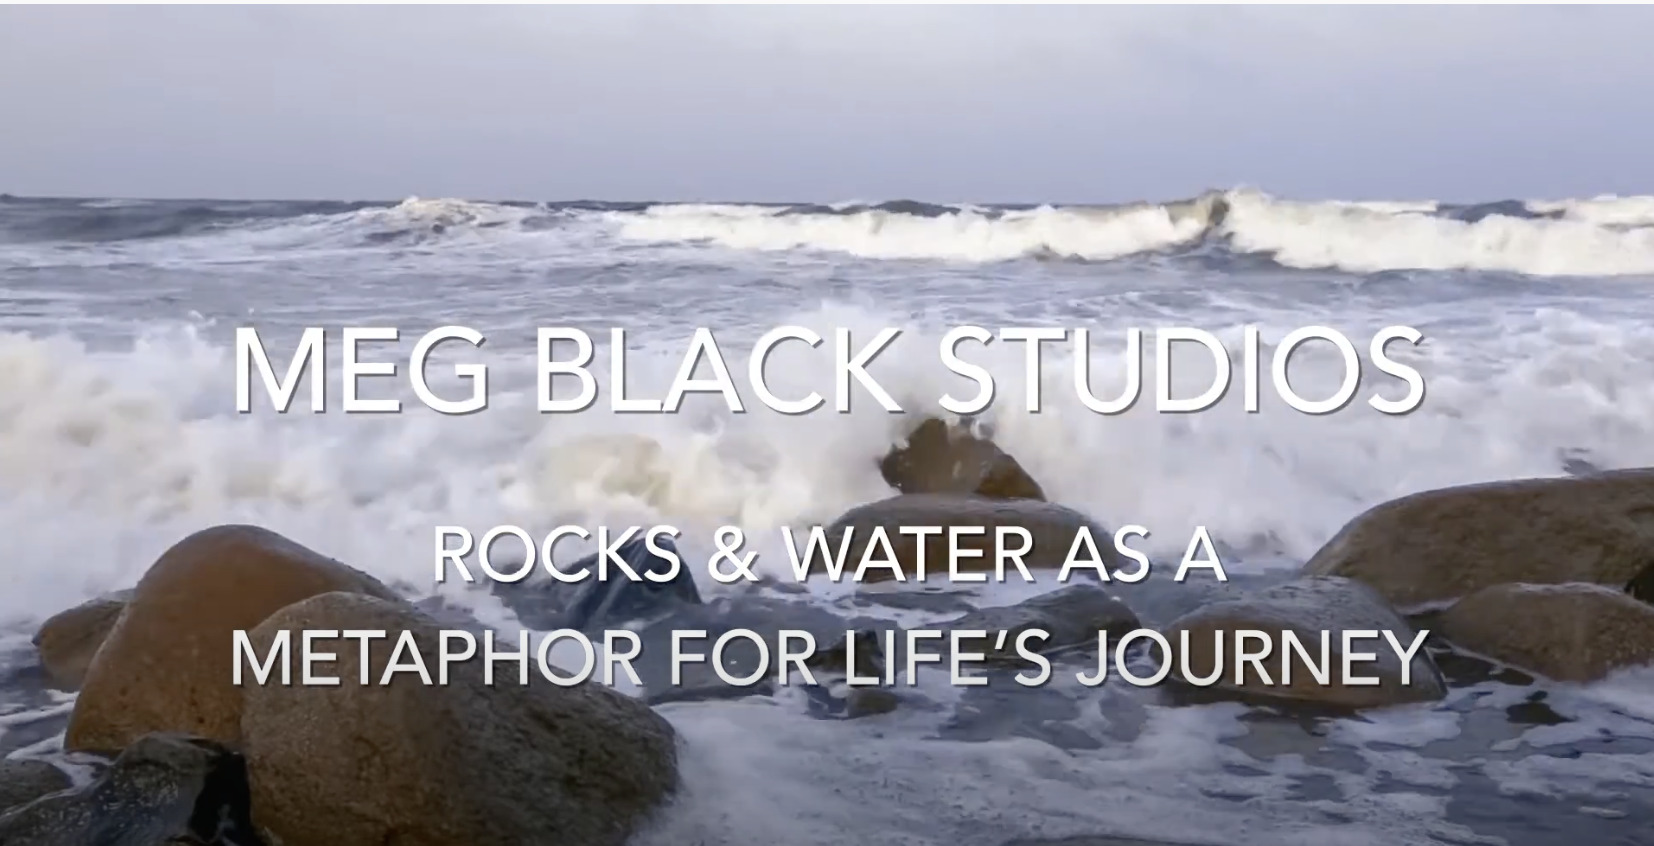 Rocks and Water as Metaphor for Life's Journey